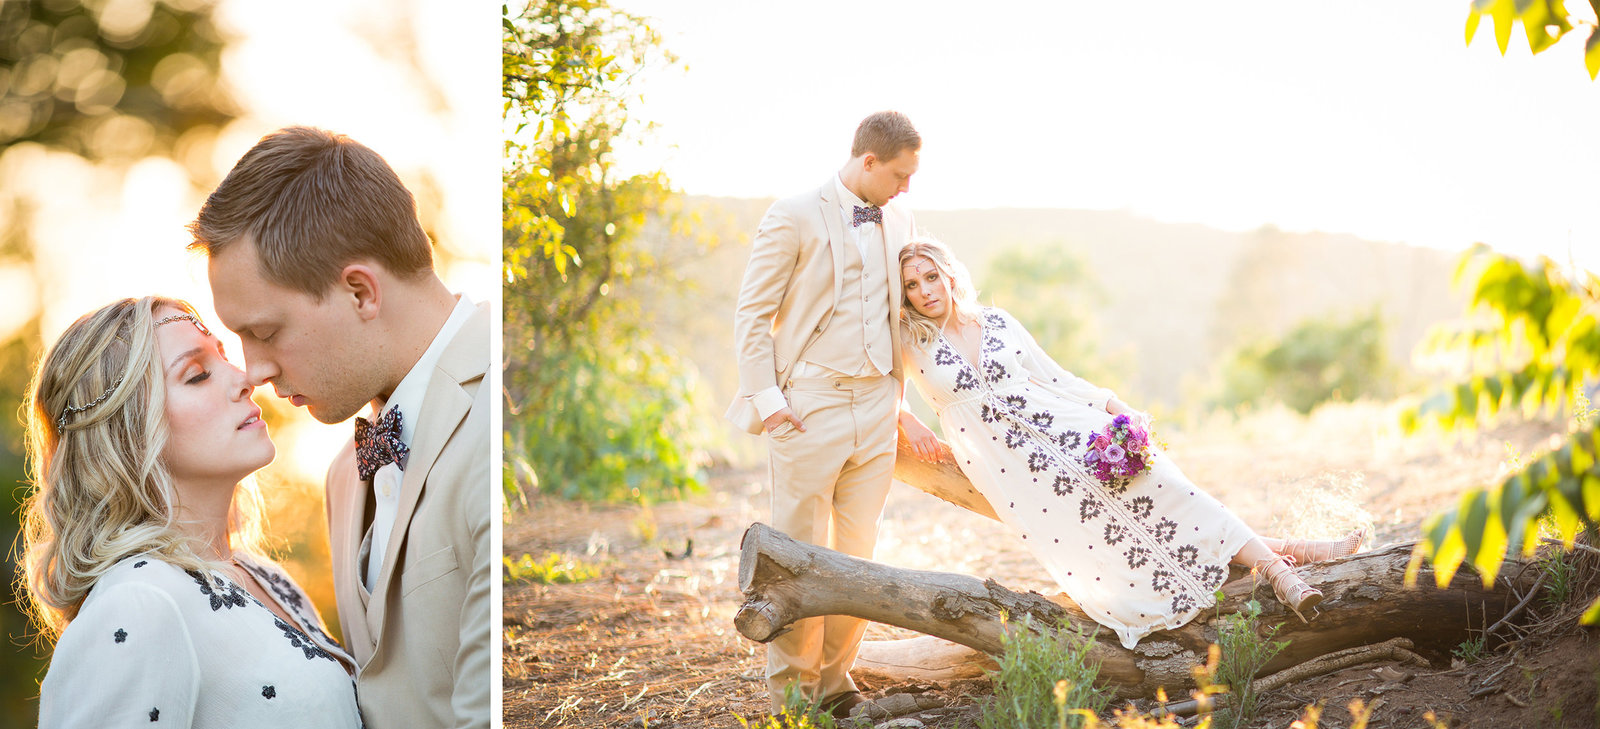 sunset lighting with bride and groom